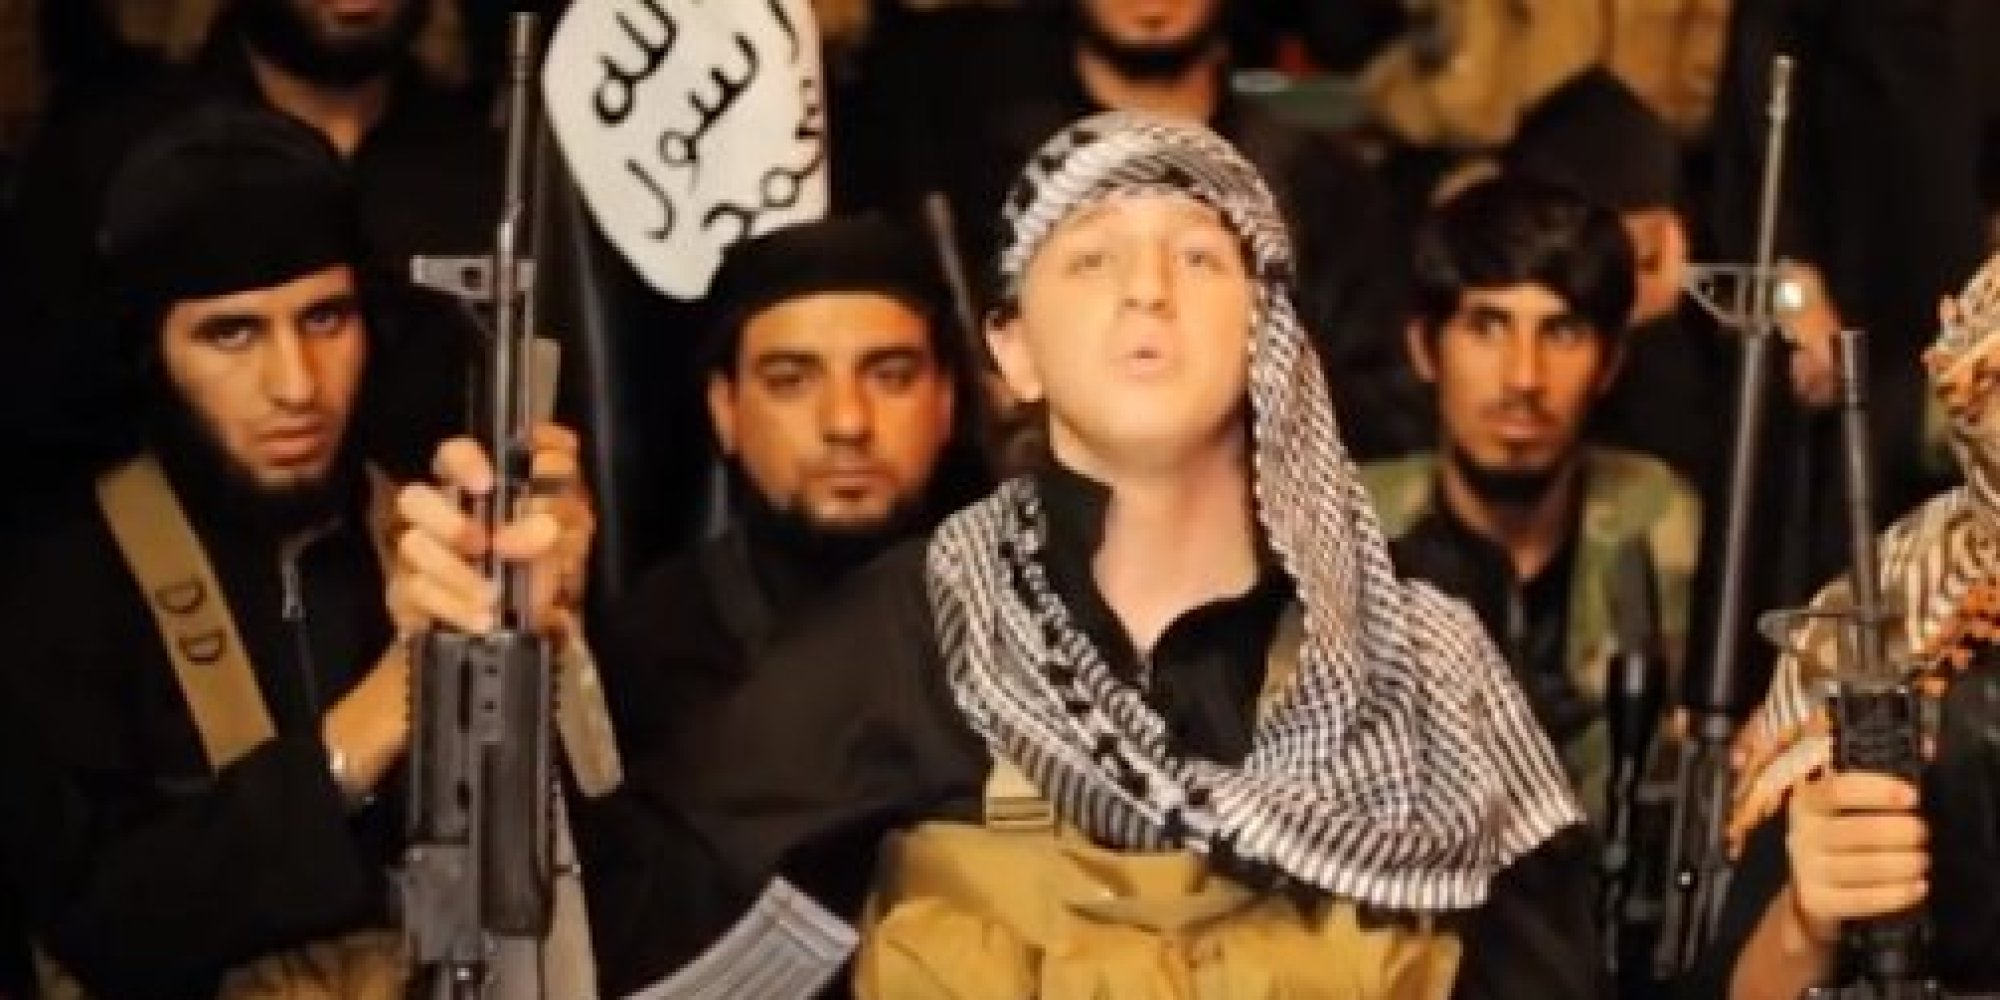 ISIS Releases Video Featuring Awkward Australian Teen ...